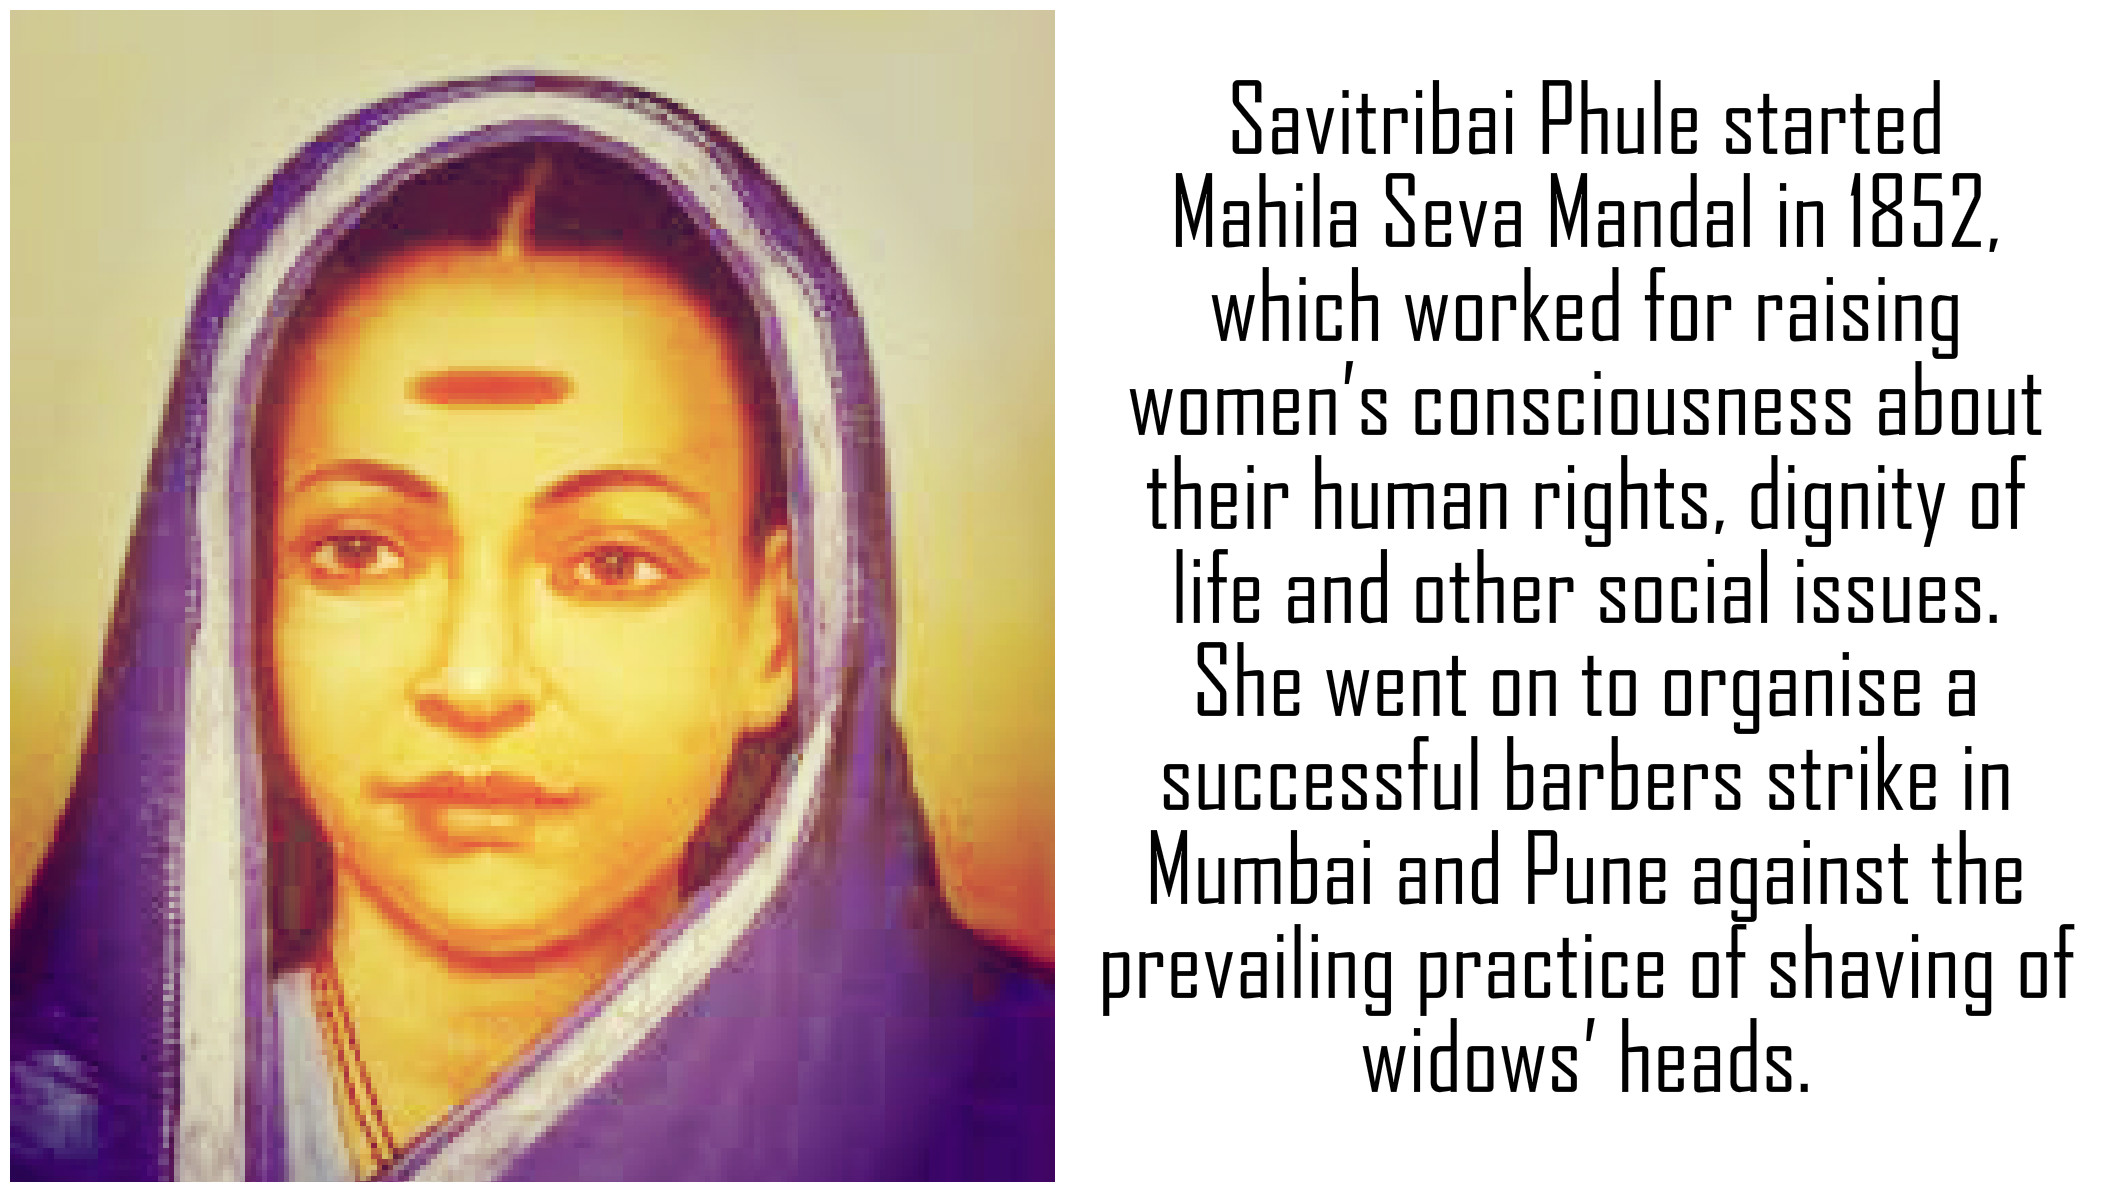 essay about women empowerment women essay should women have equal  savitribai phule photos dr b r ambedkar s caravan also mahatma jotiba phule and savitribai phule s